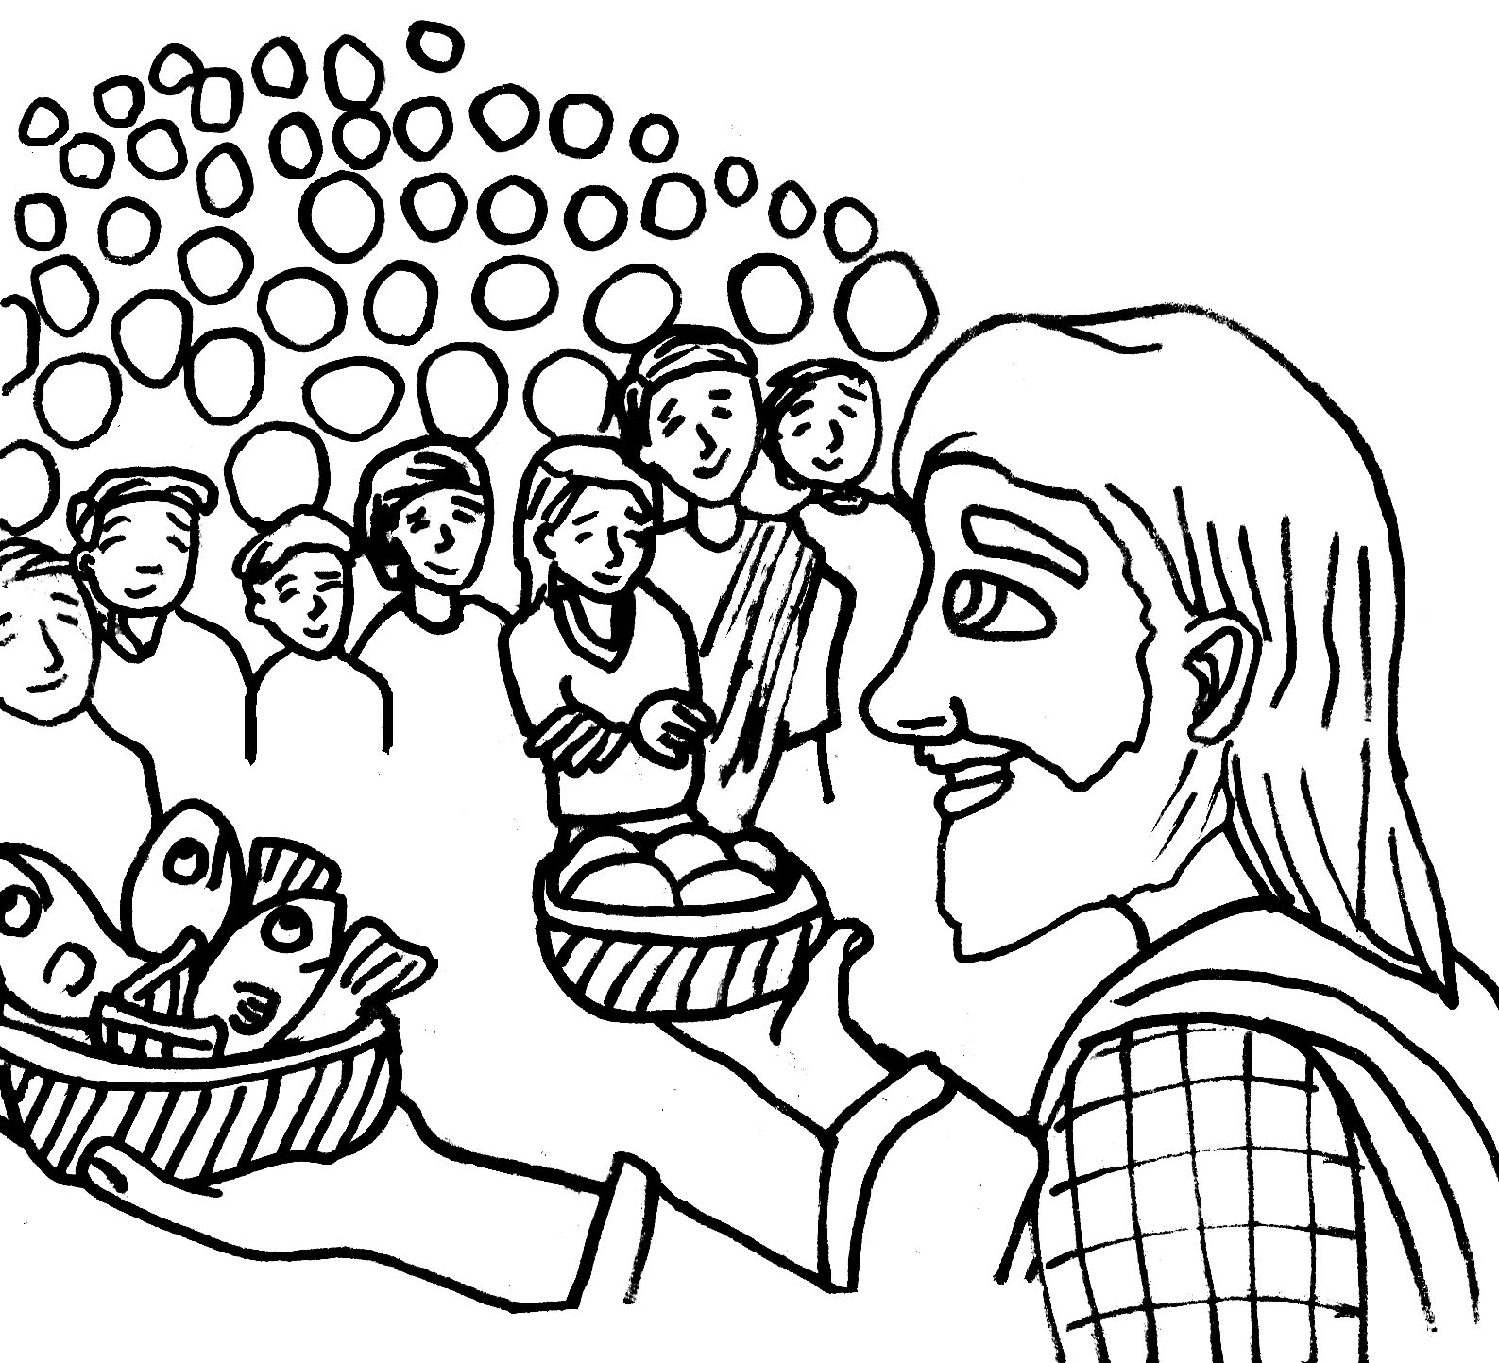 Ldsfiles Clipart Jesus Feeds 5000 Coloring Page Jesus Feeds 5000 Coloring Page